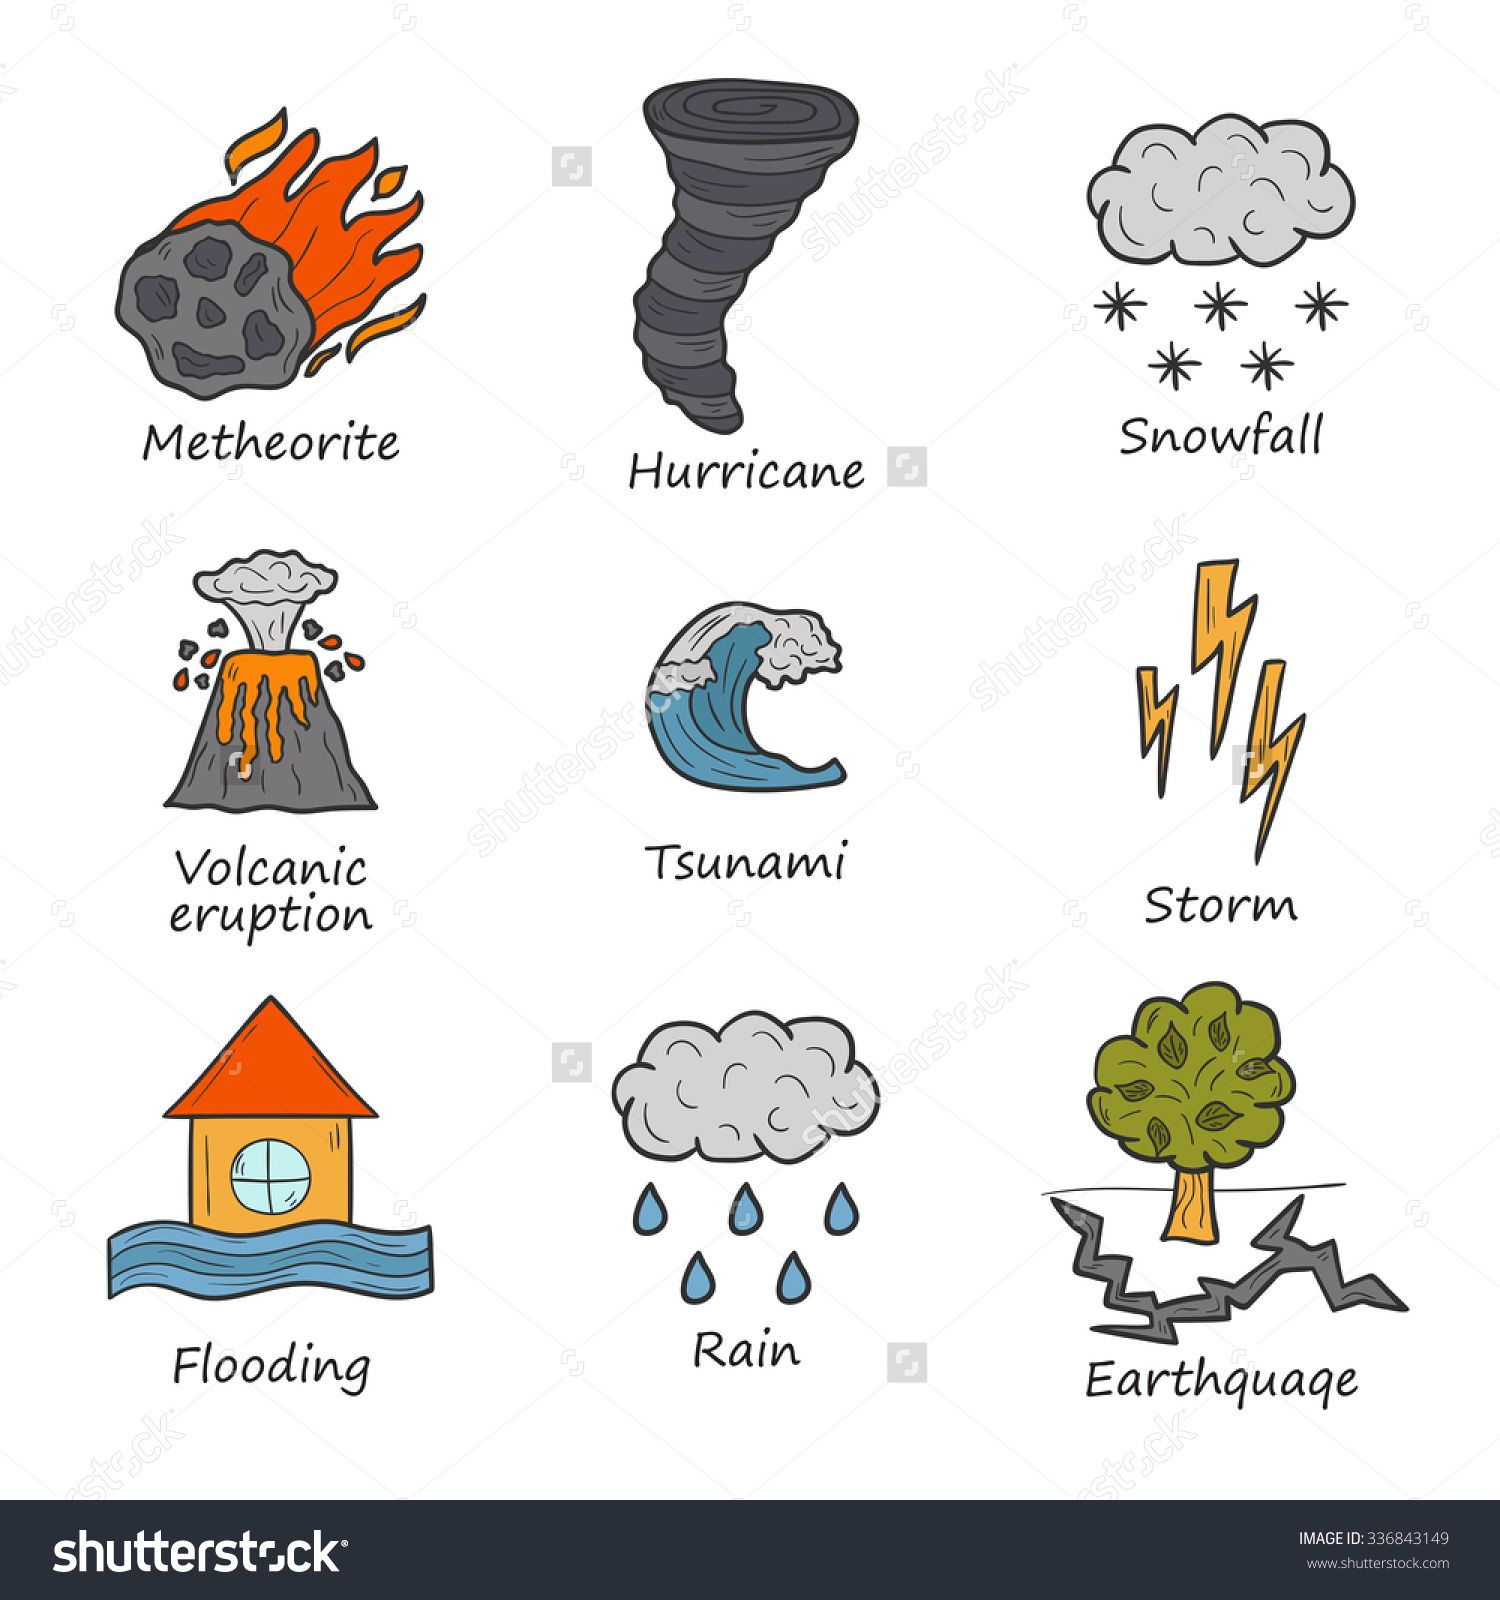 This pin helps the. Hurricane clipart natural disaster